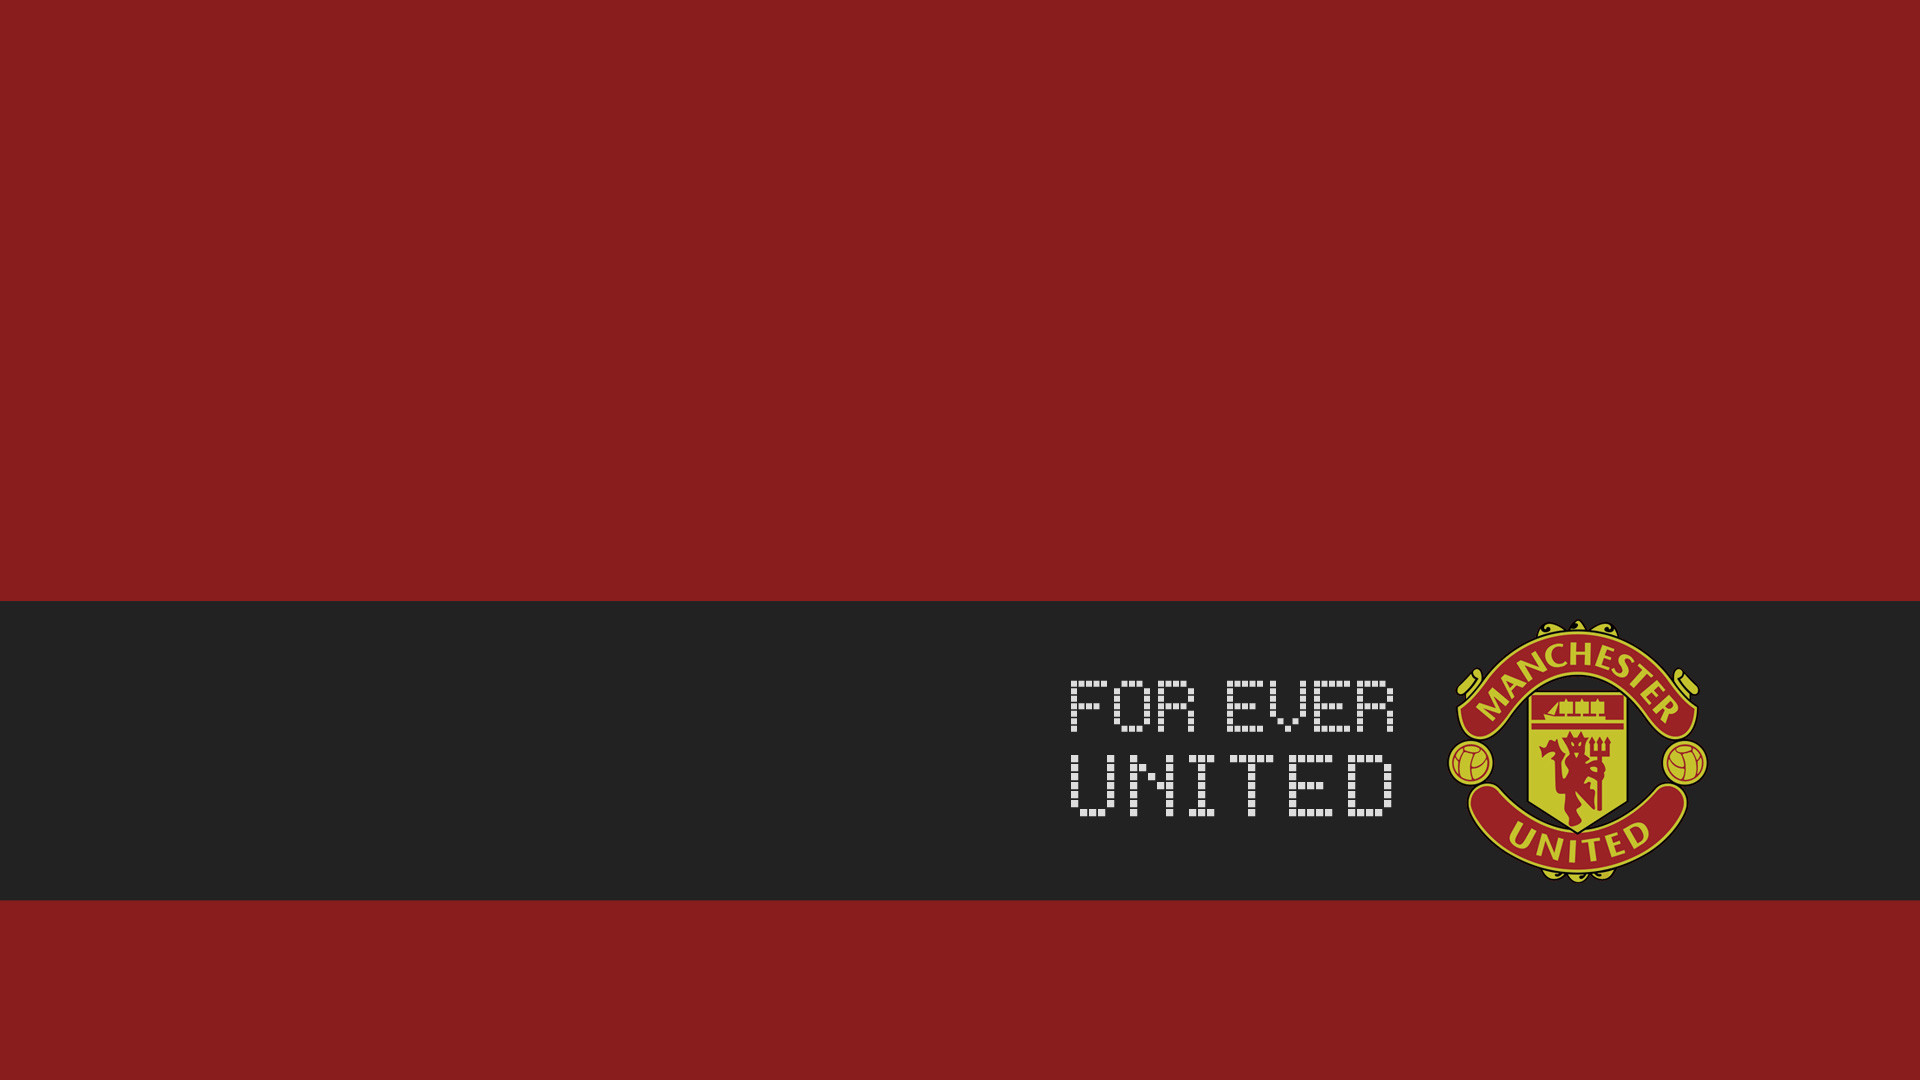 Manchester united wallpaper hd 1920x1080 manchester united hd wallpaper d pinterest manchester manchester united wallpaper and wallpaper voltagebd Choice Image